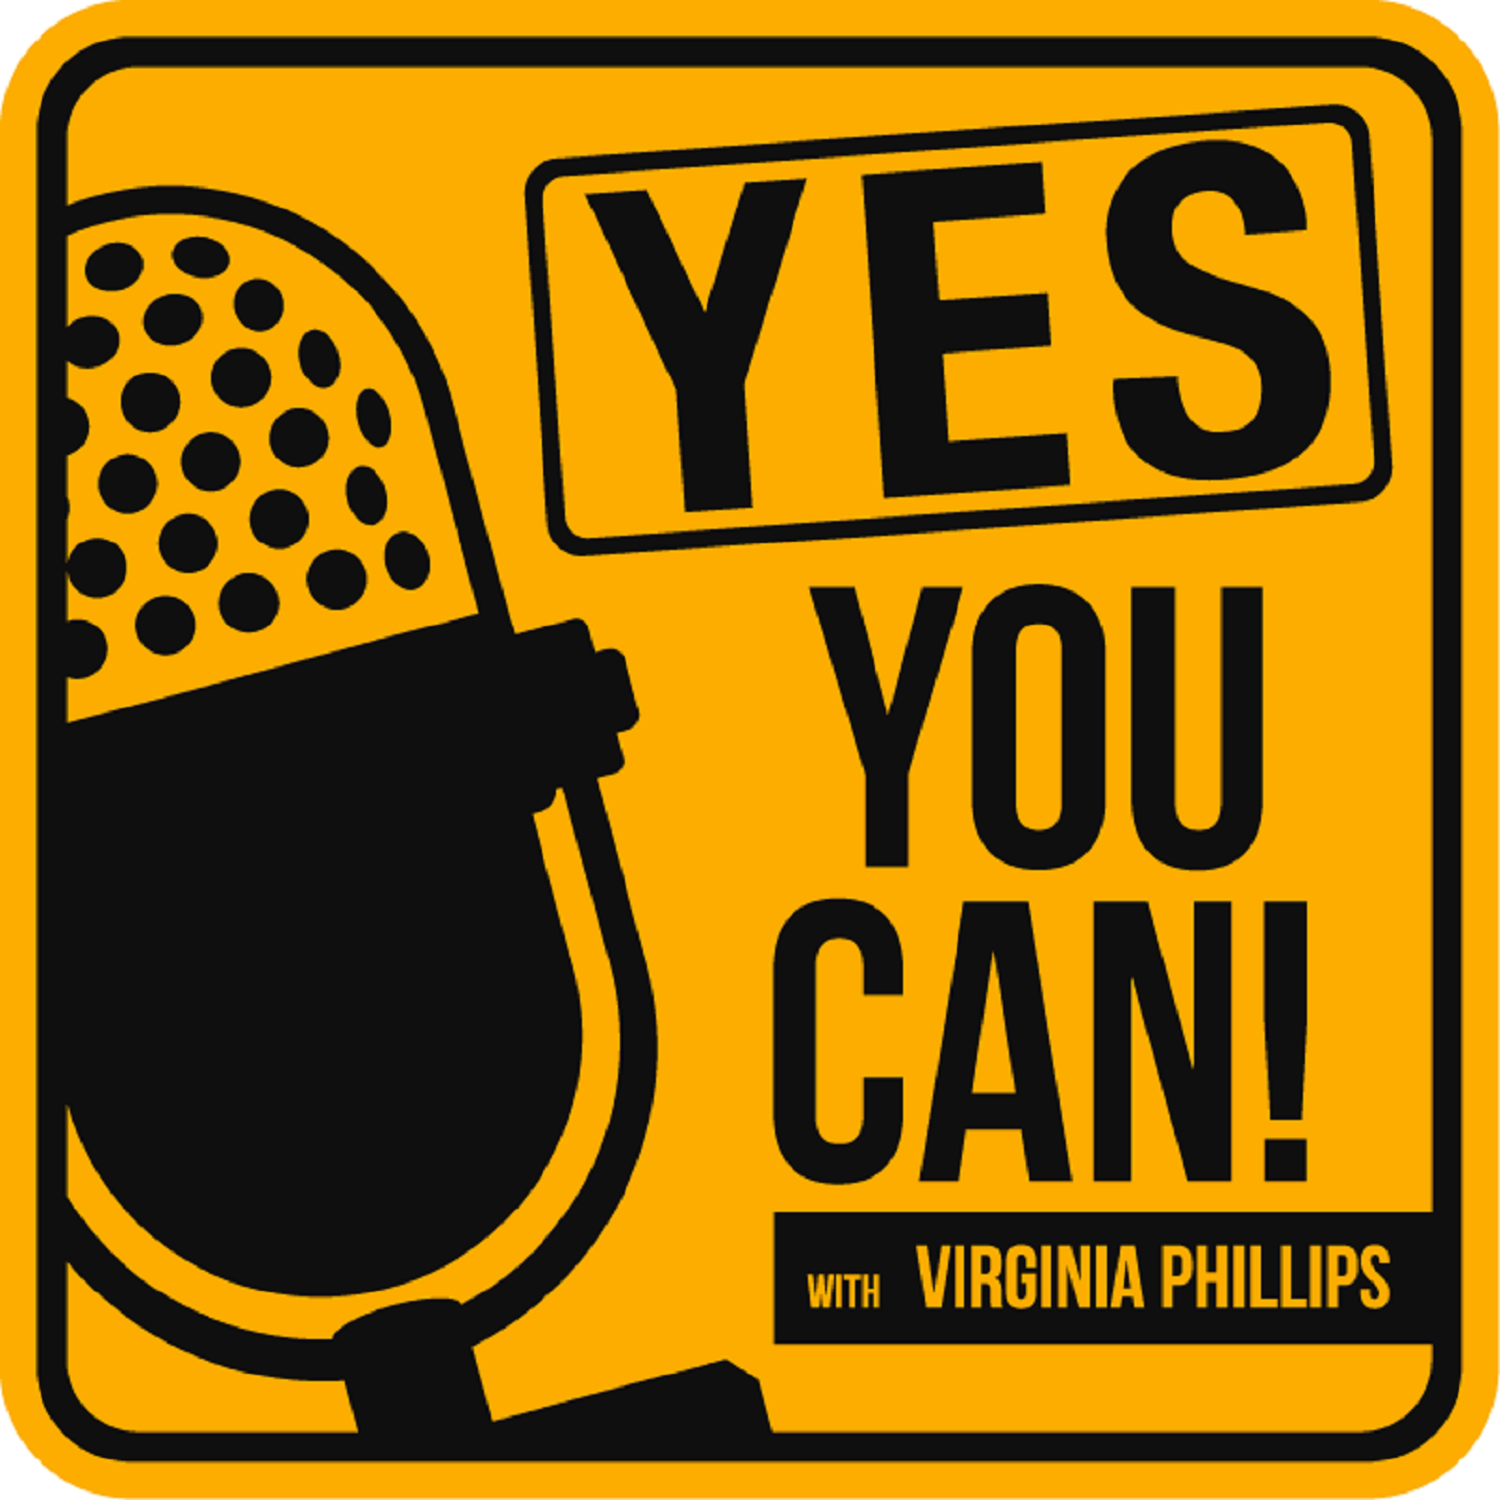 Yes, You Can! with Virginia Phillips